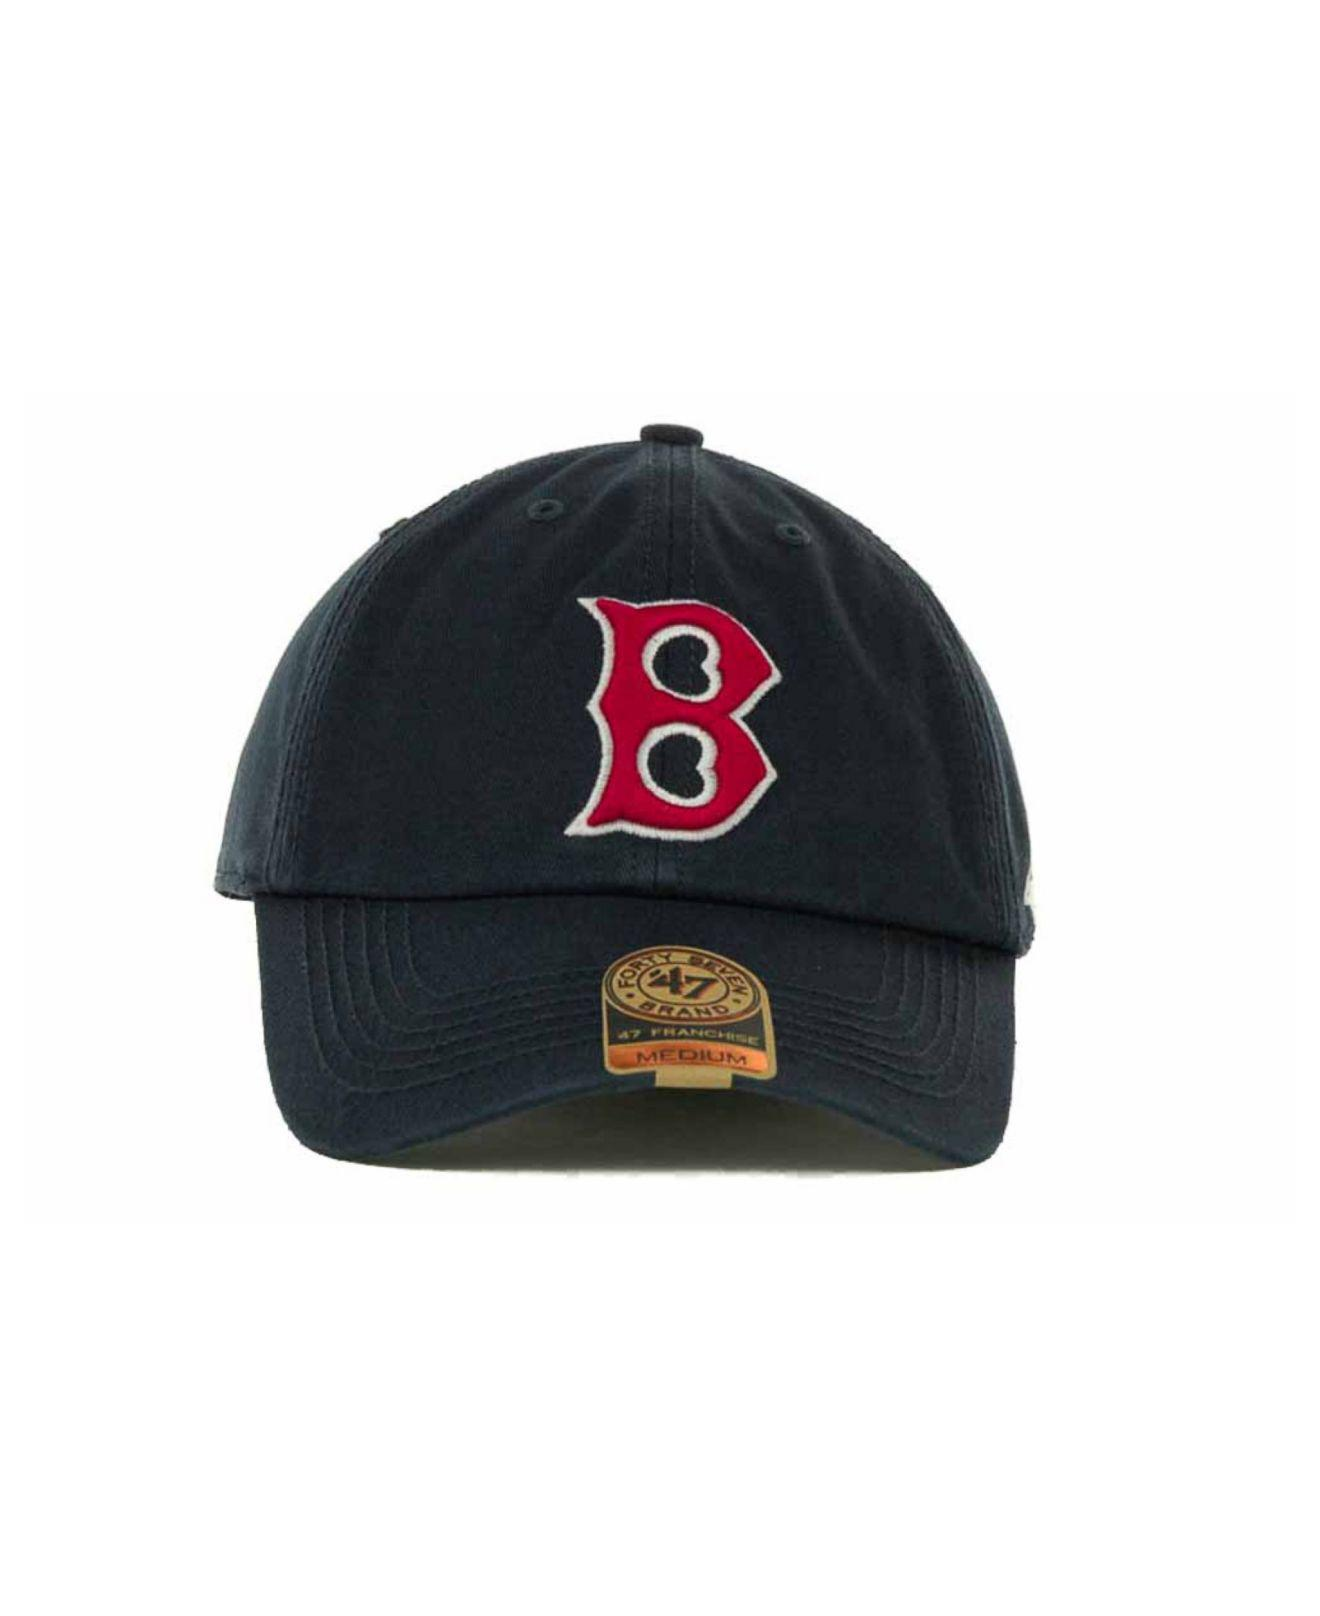 online store 4ece2 9248c Lyst - 47 Brand Boston Red Sox Franchise Cap in Blue for Men